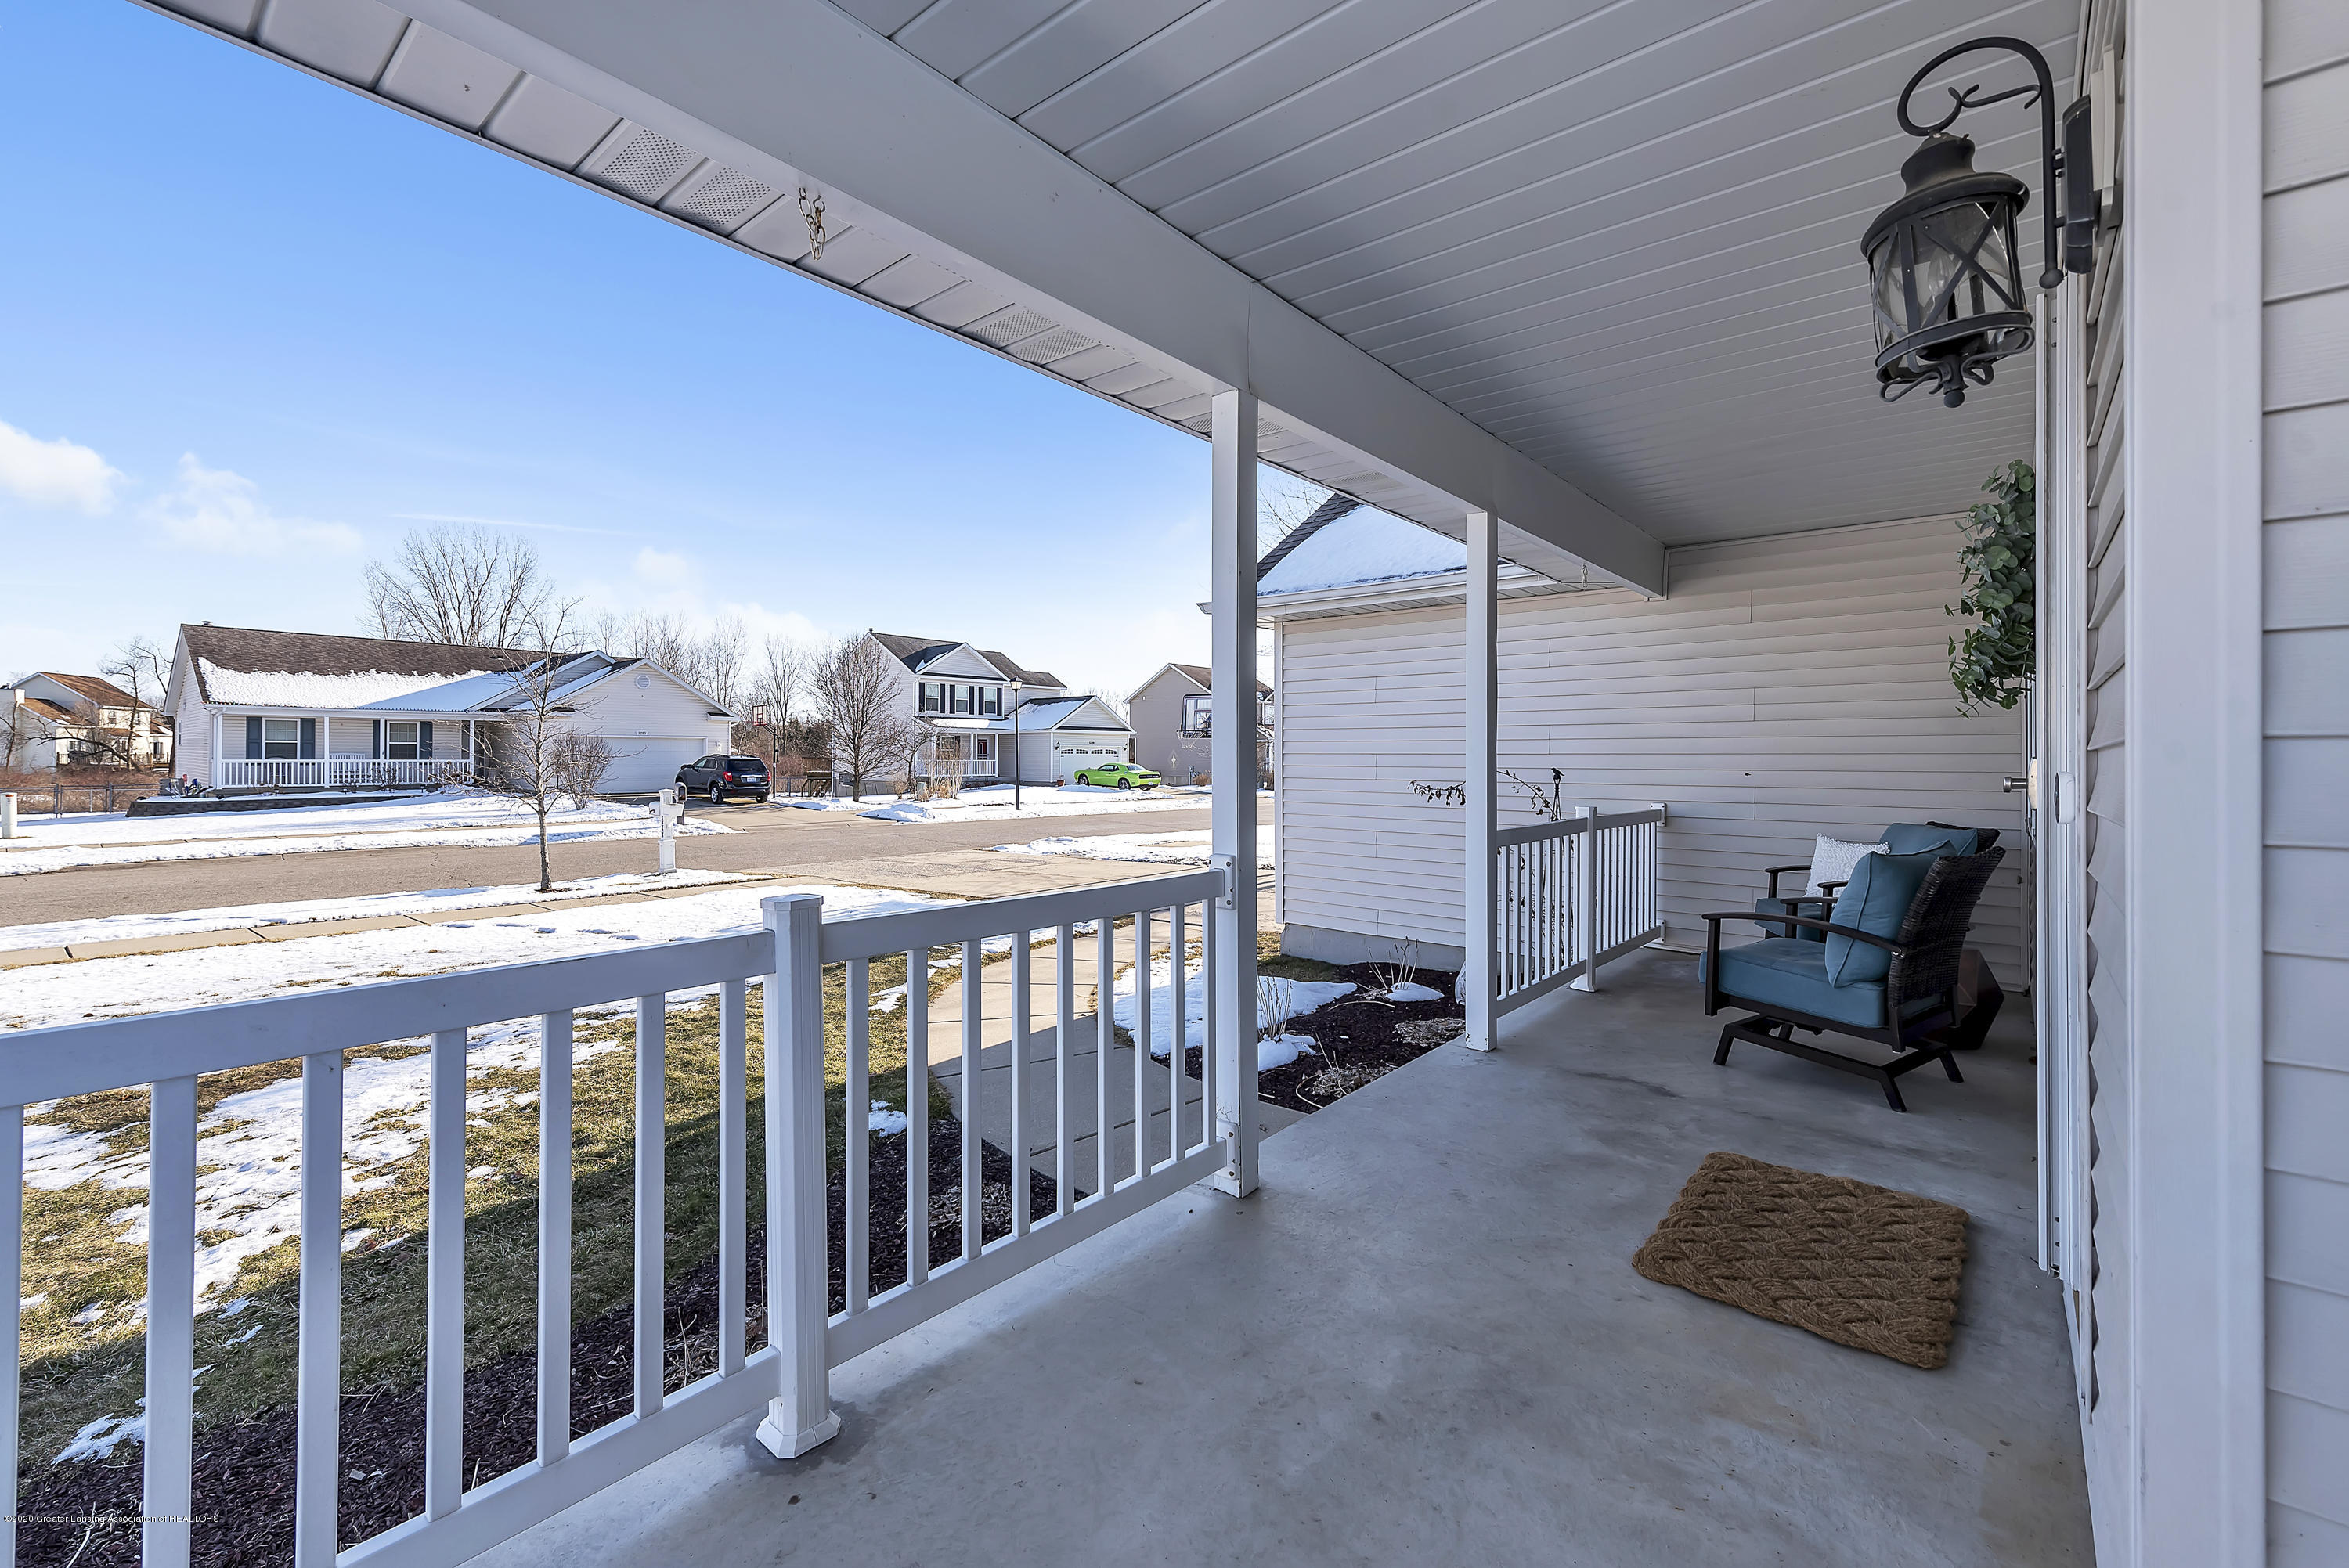 5206 Witherspoon Way - 5206-Witherspoon-Way-WindowStill-Real-Es - 5